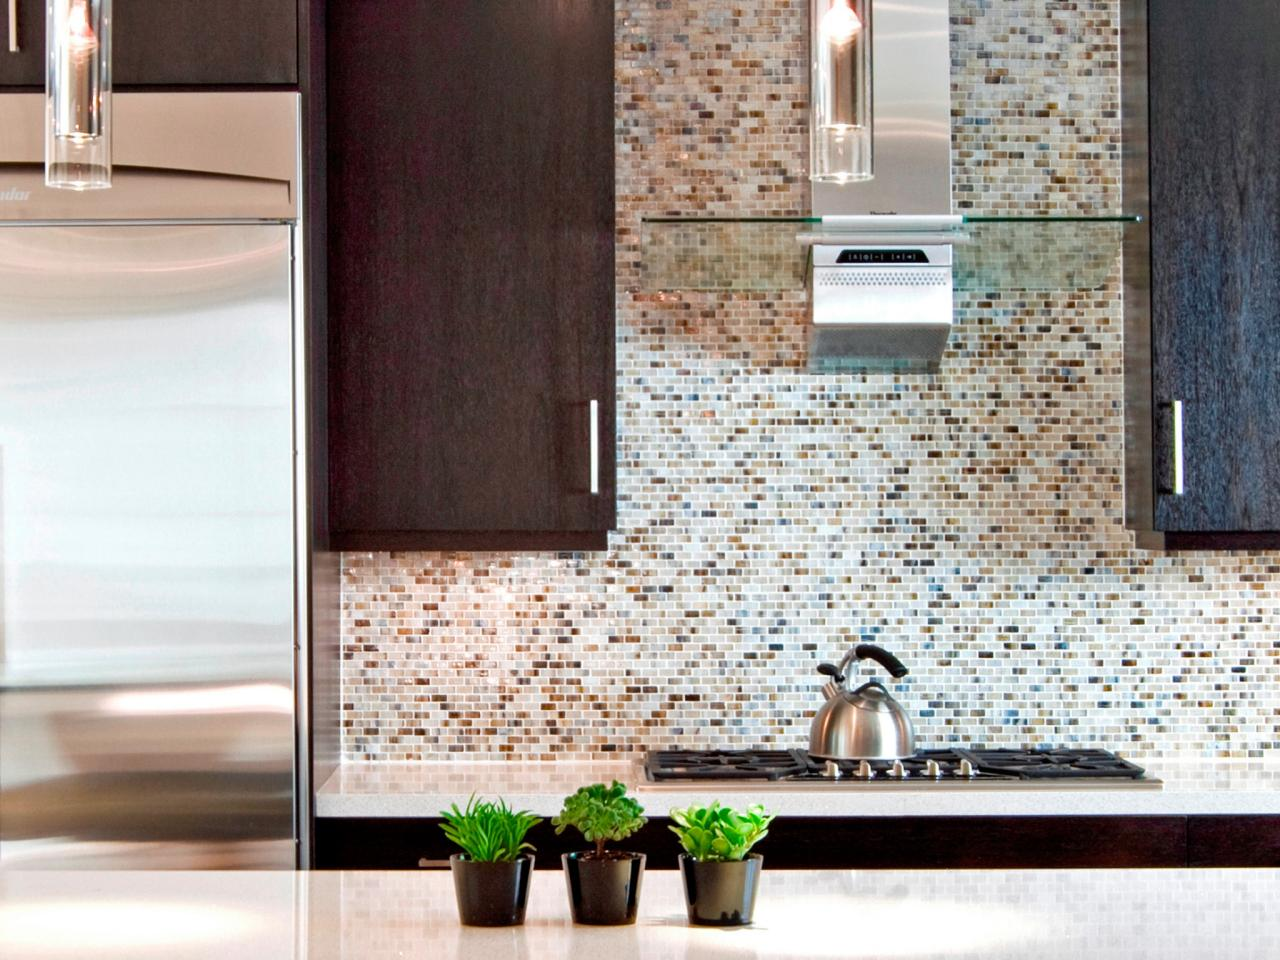 Kitchen backsplash design ideas hgtv pictures tips hgtv - Backsplash ideas kitchen ...